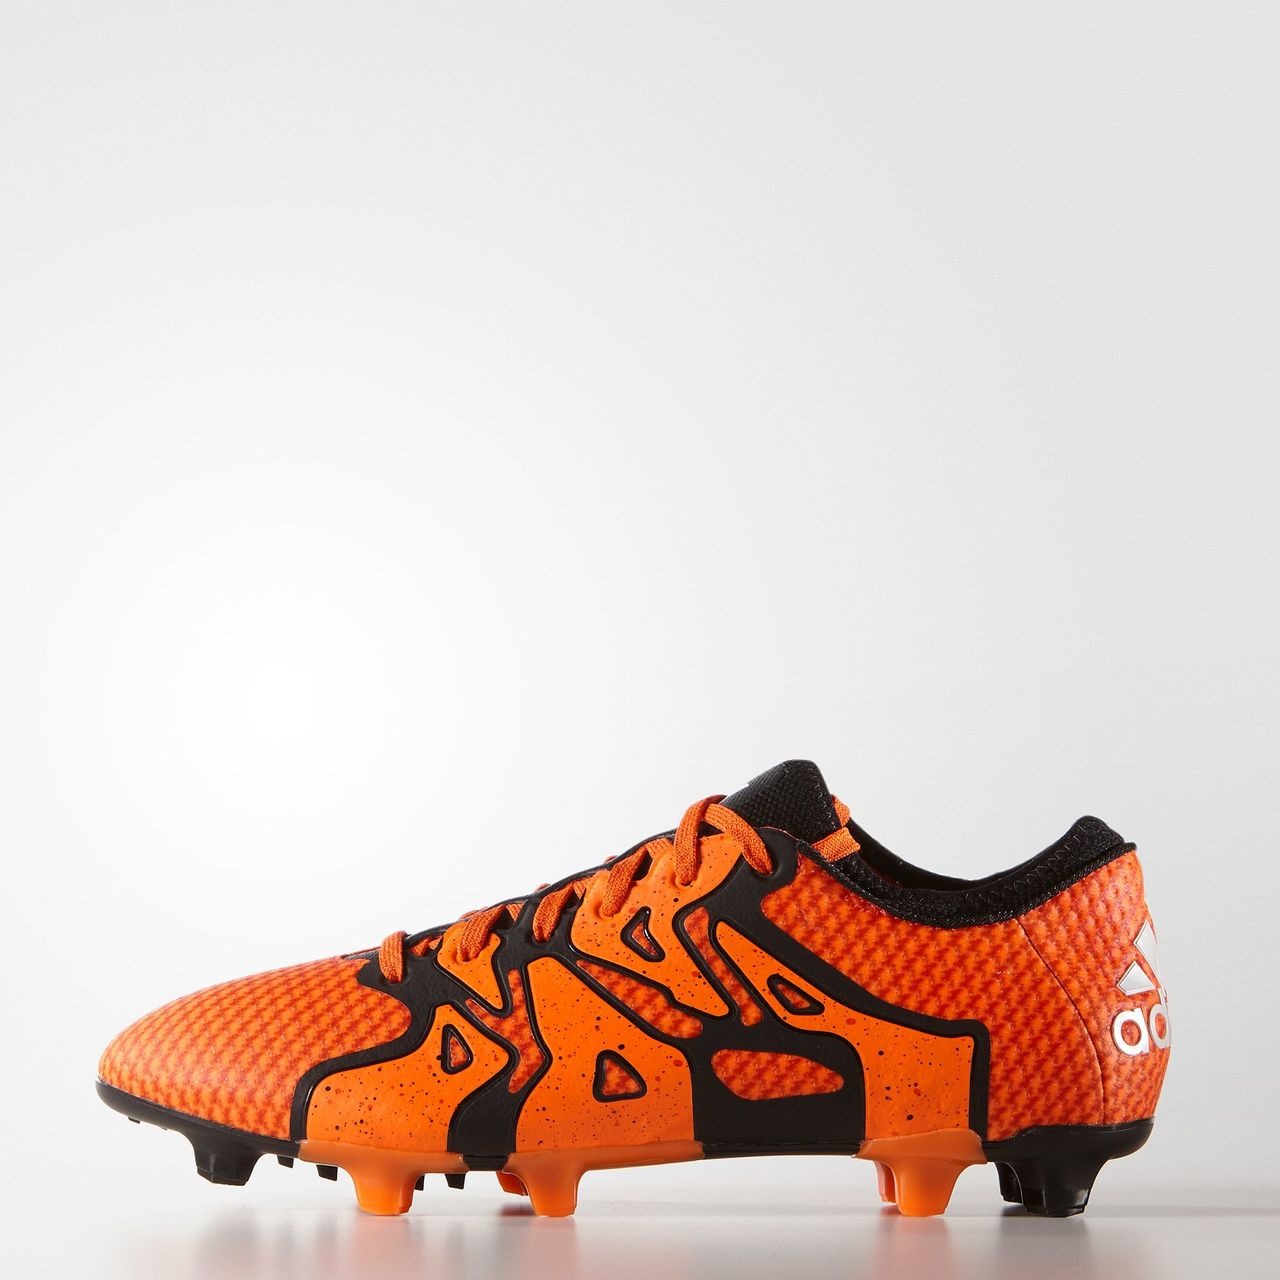 7b8885b2133b Adidas X15.1 Prime Firm Artificial Ground Boots - Solar Orange ...